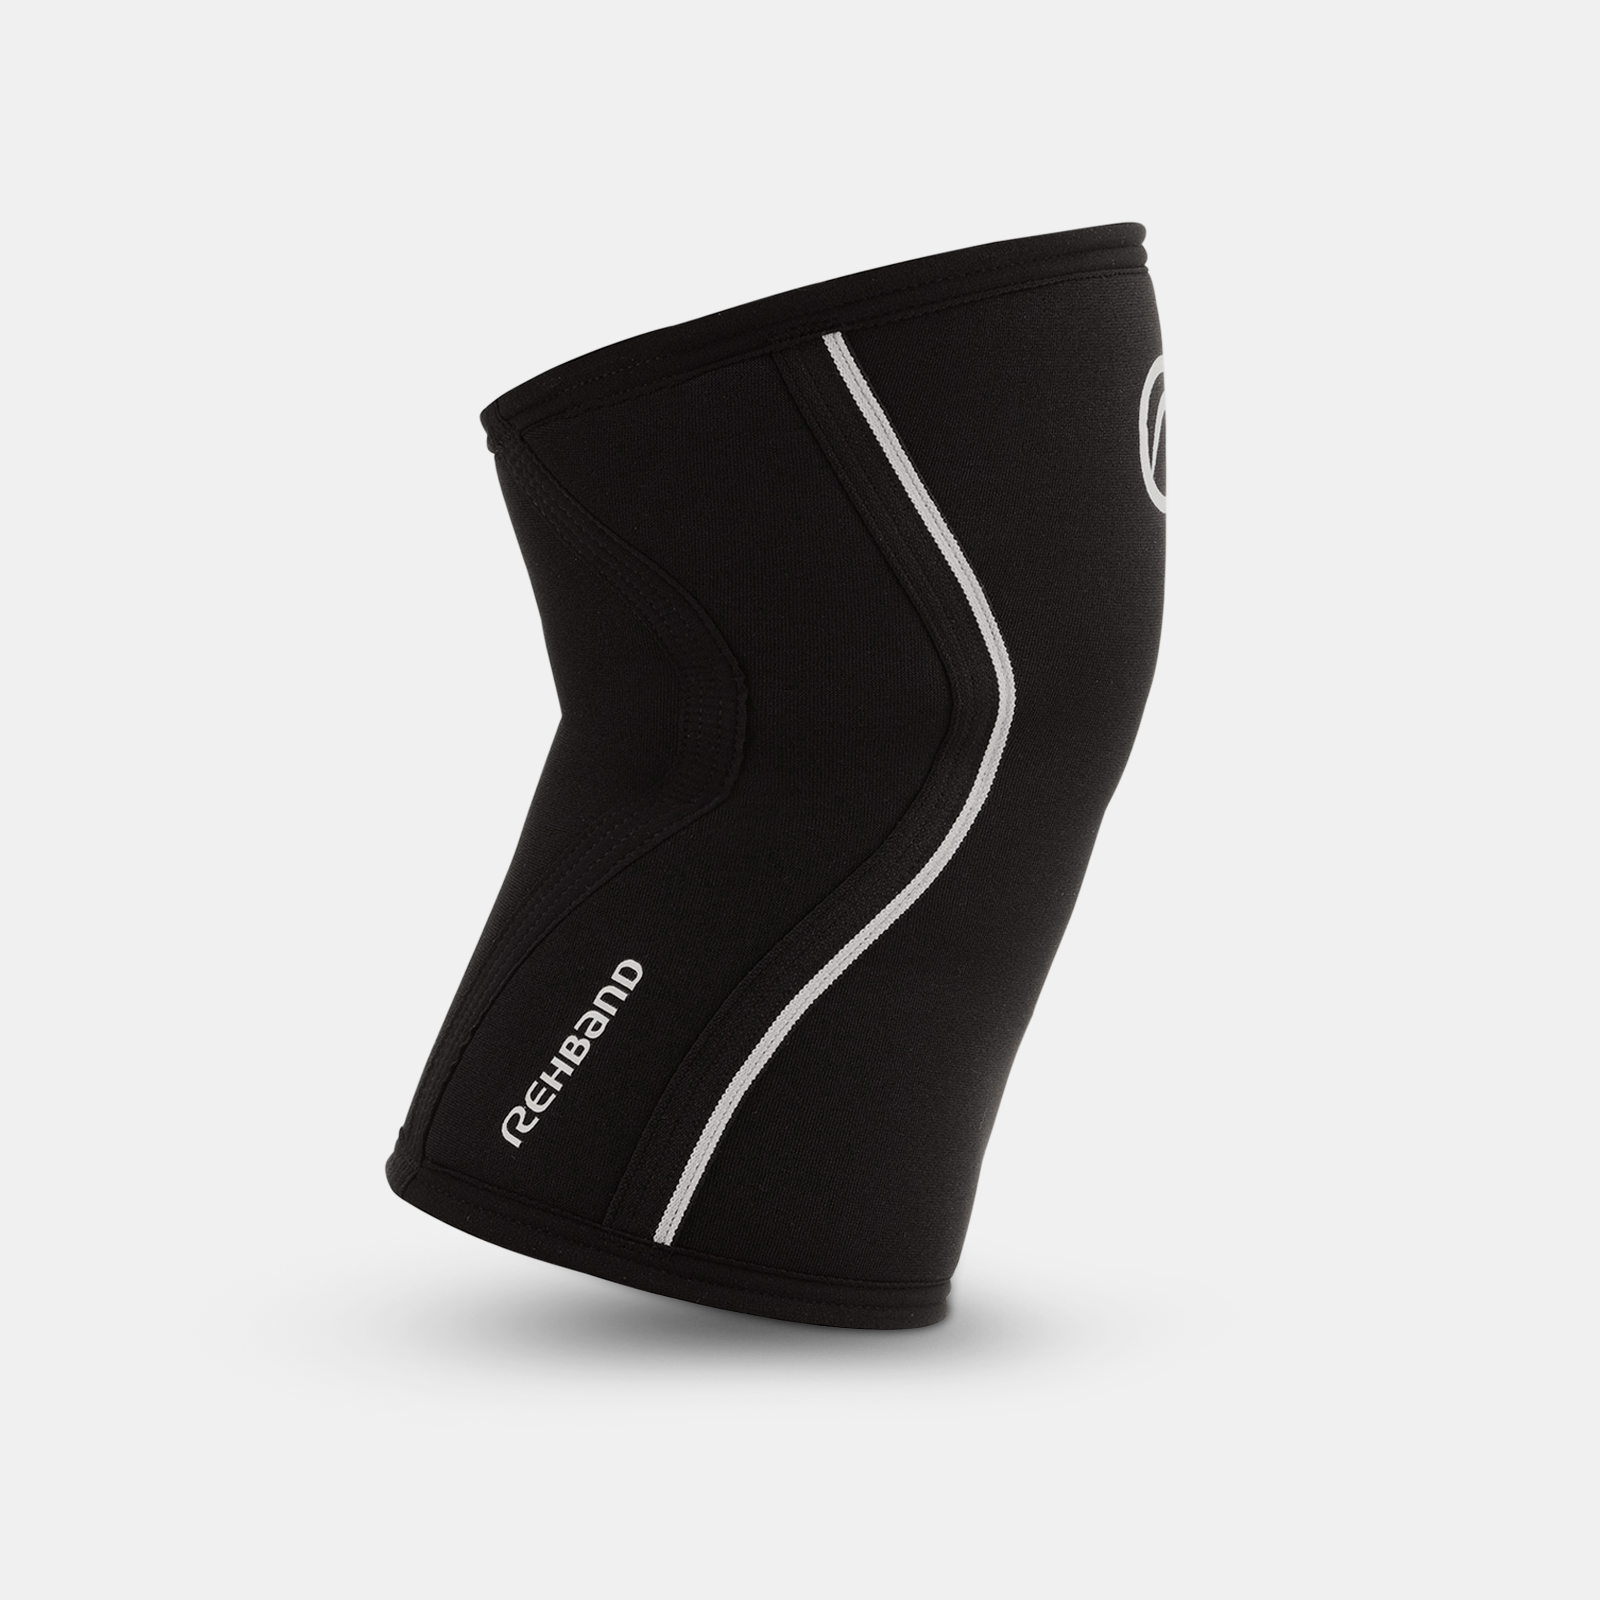 Rehband RX Knee Sleeve - 3mm Black/White image